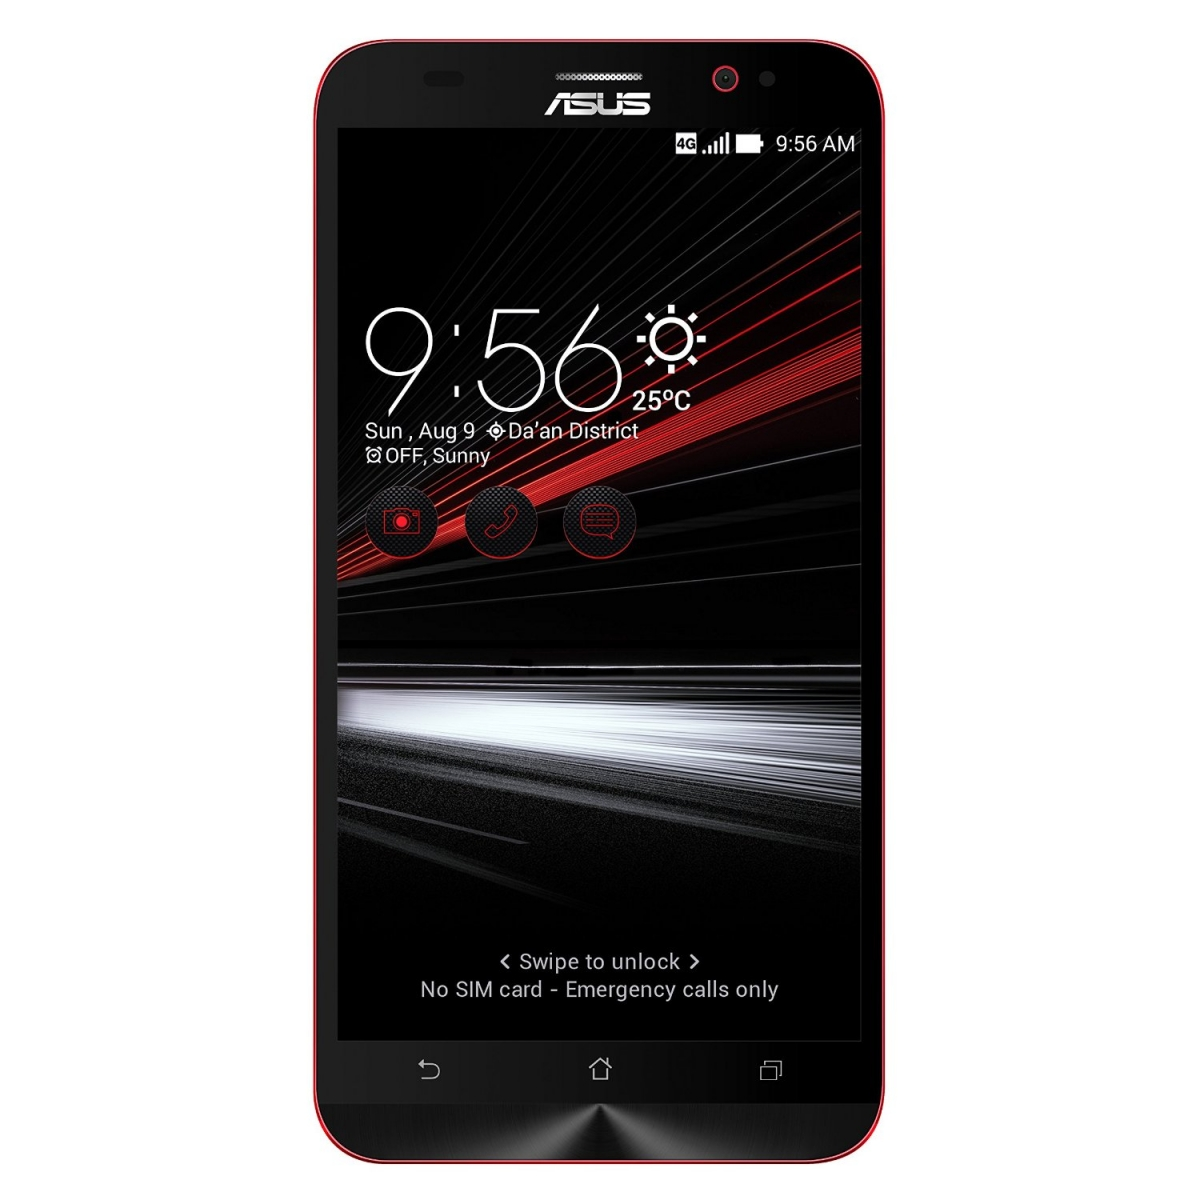 128GB Asus Zenfone 2 in US